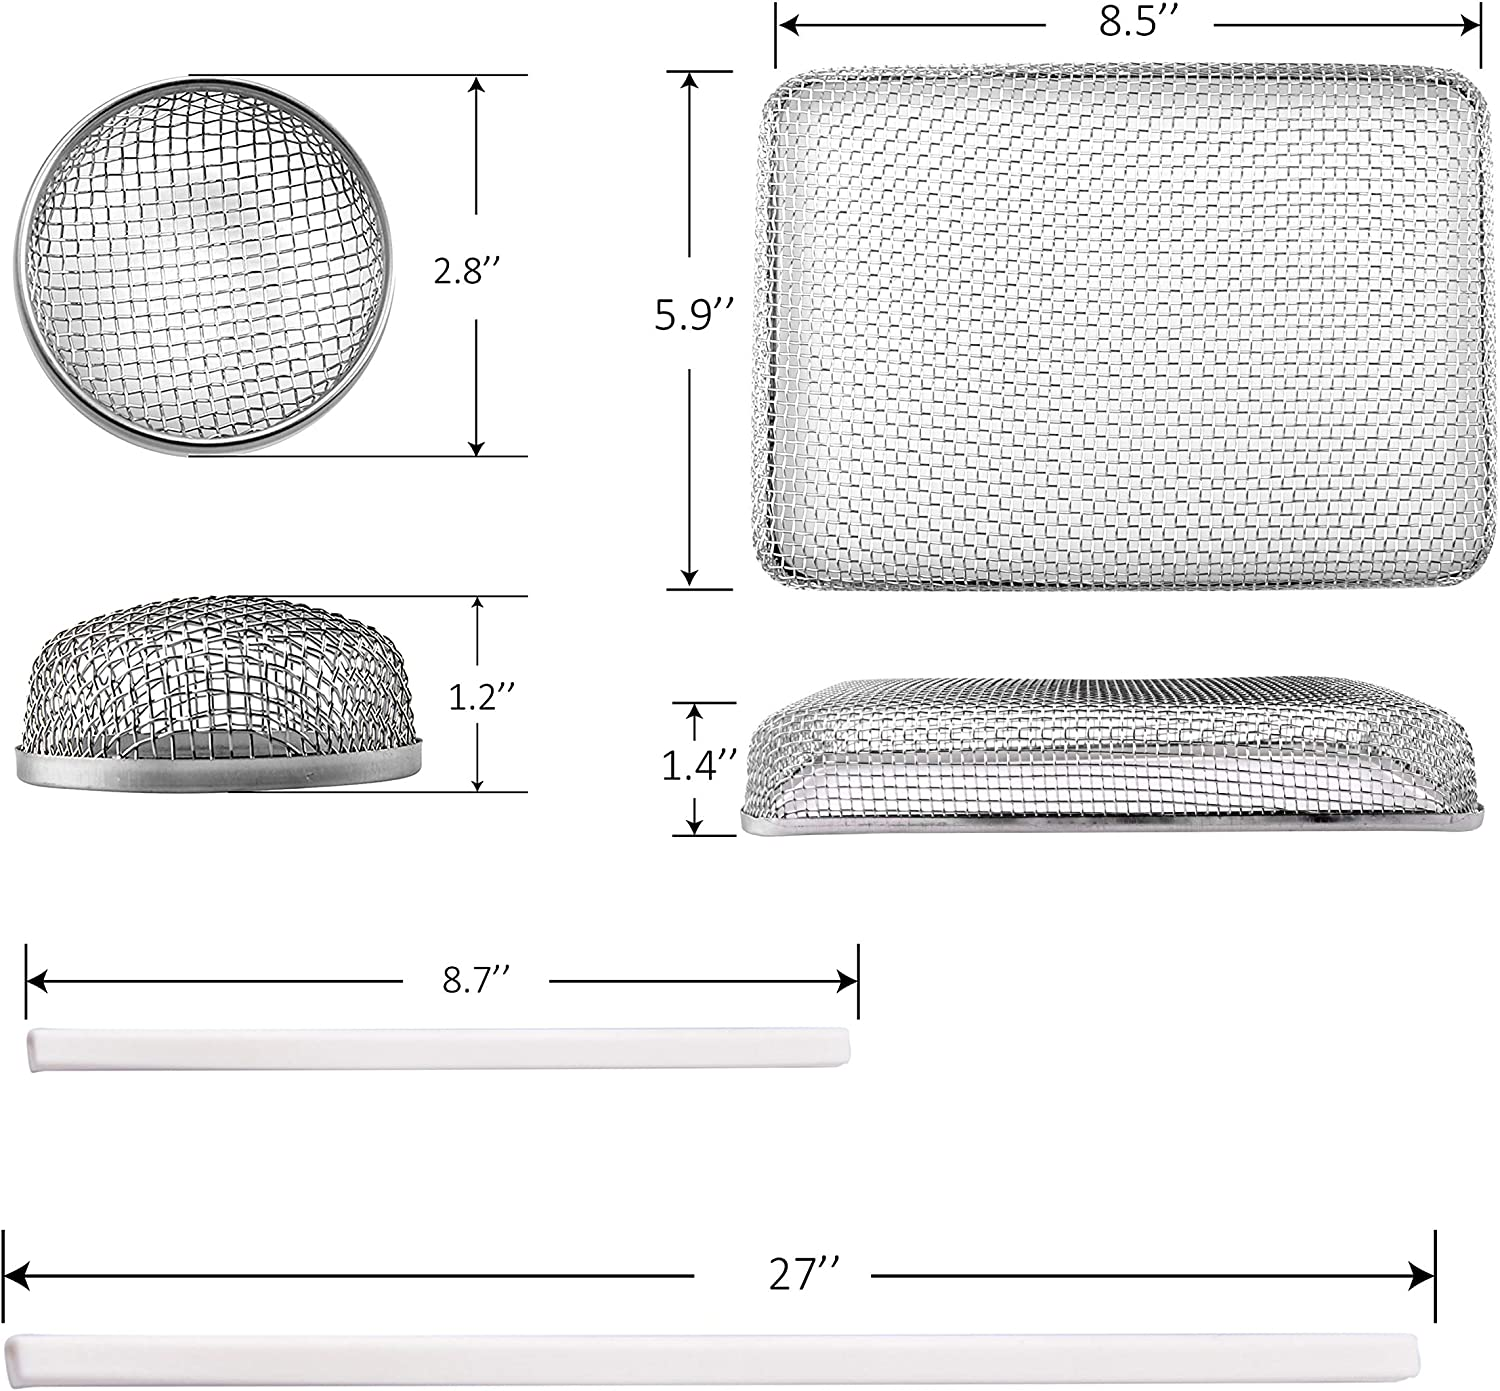 RV Furnace Vent Cover Bug Screen 2 Pack 2.8 x 1.3 Inch Stainless Steel Mesh with Installation Tool and Silicone Rubber RVGUARD RV Flying Insect Screen